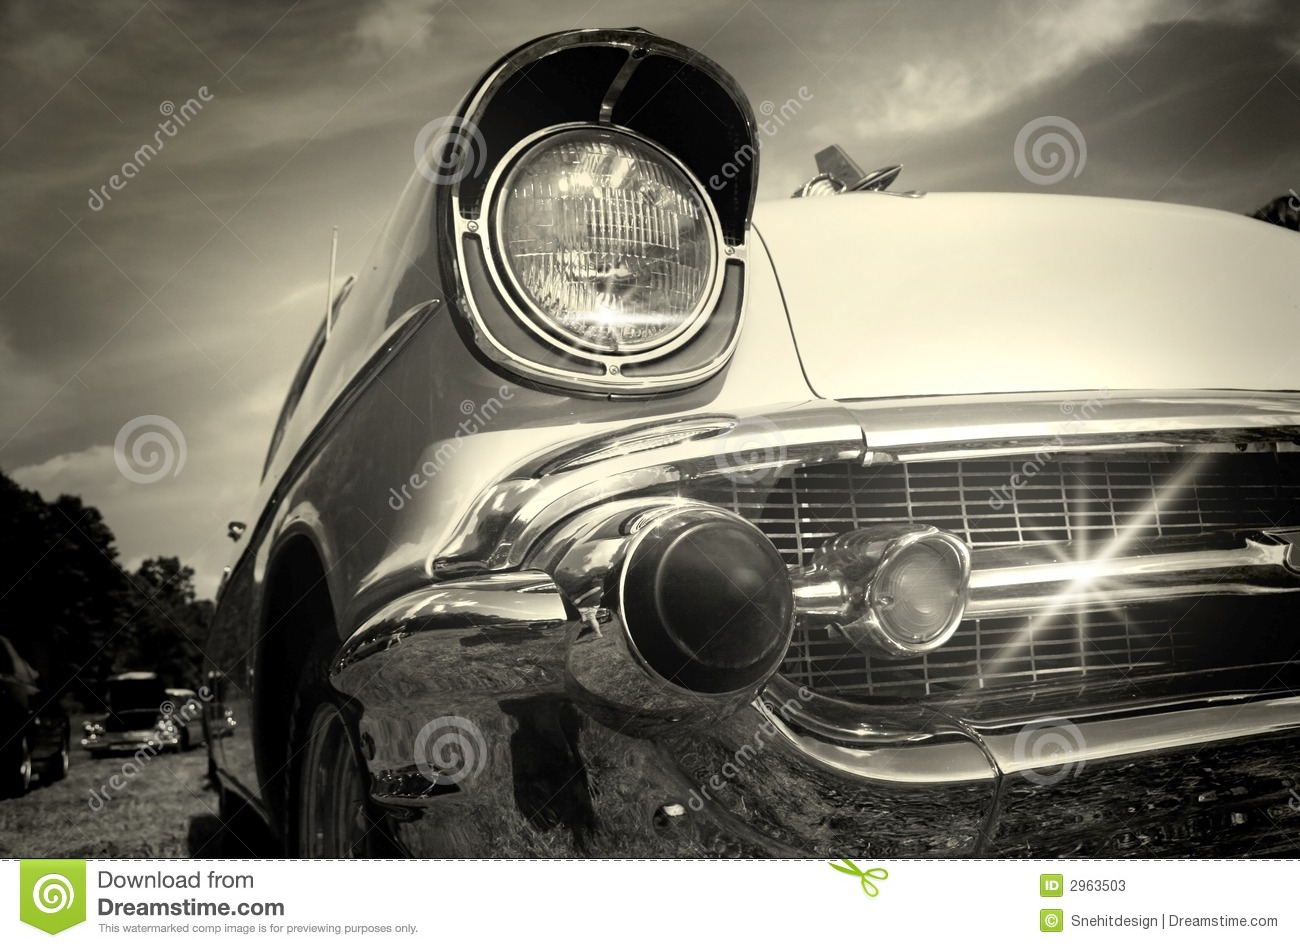 Vintage Car In Black And White Stock Image - Image: 2963503